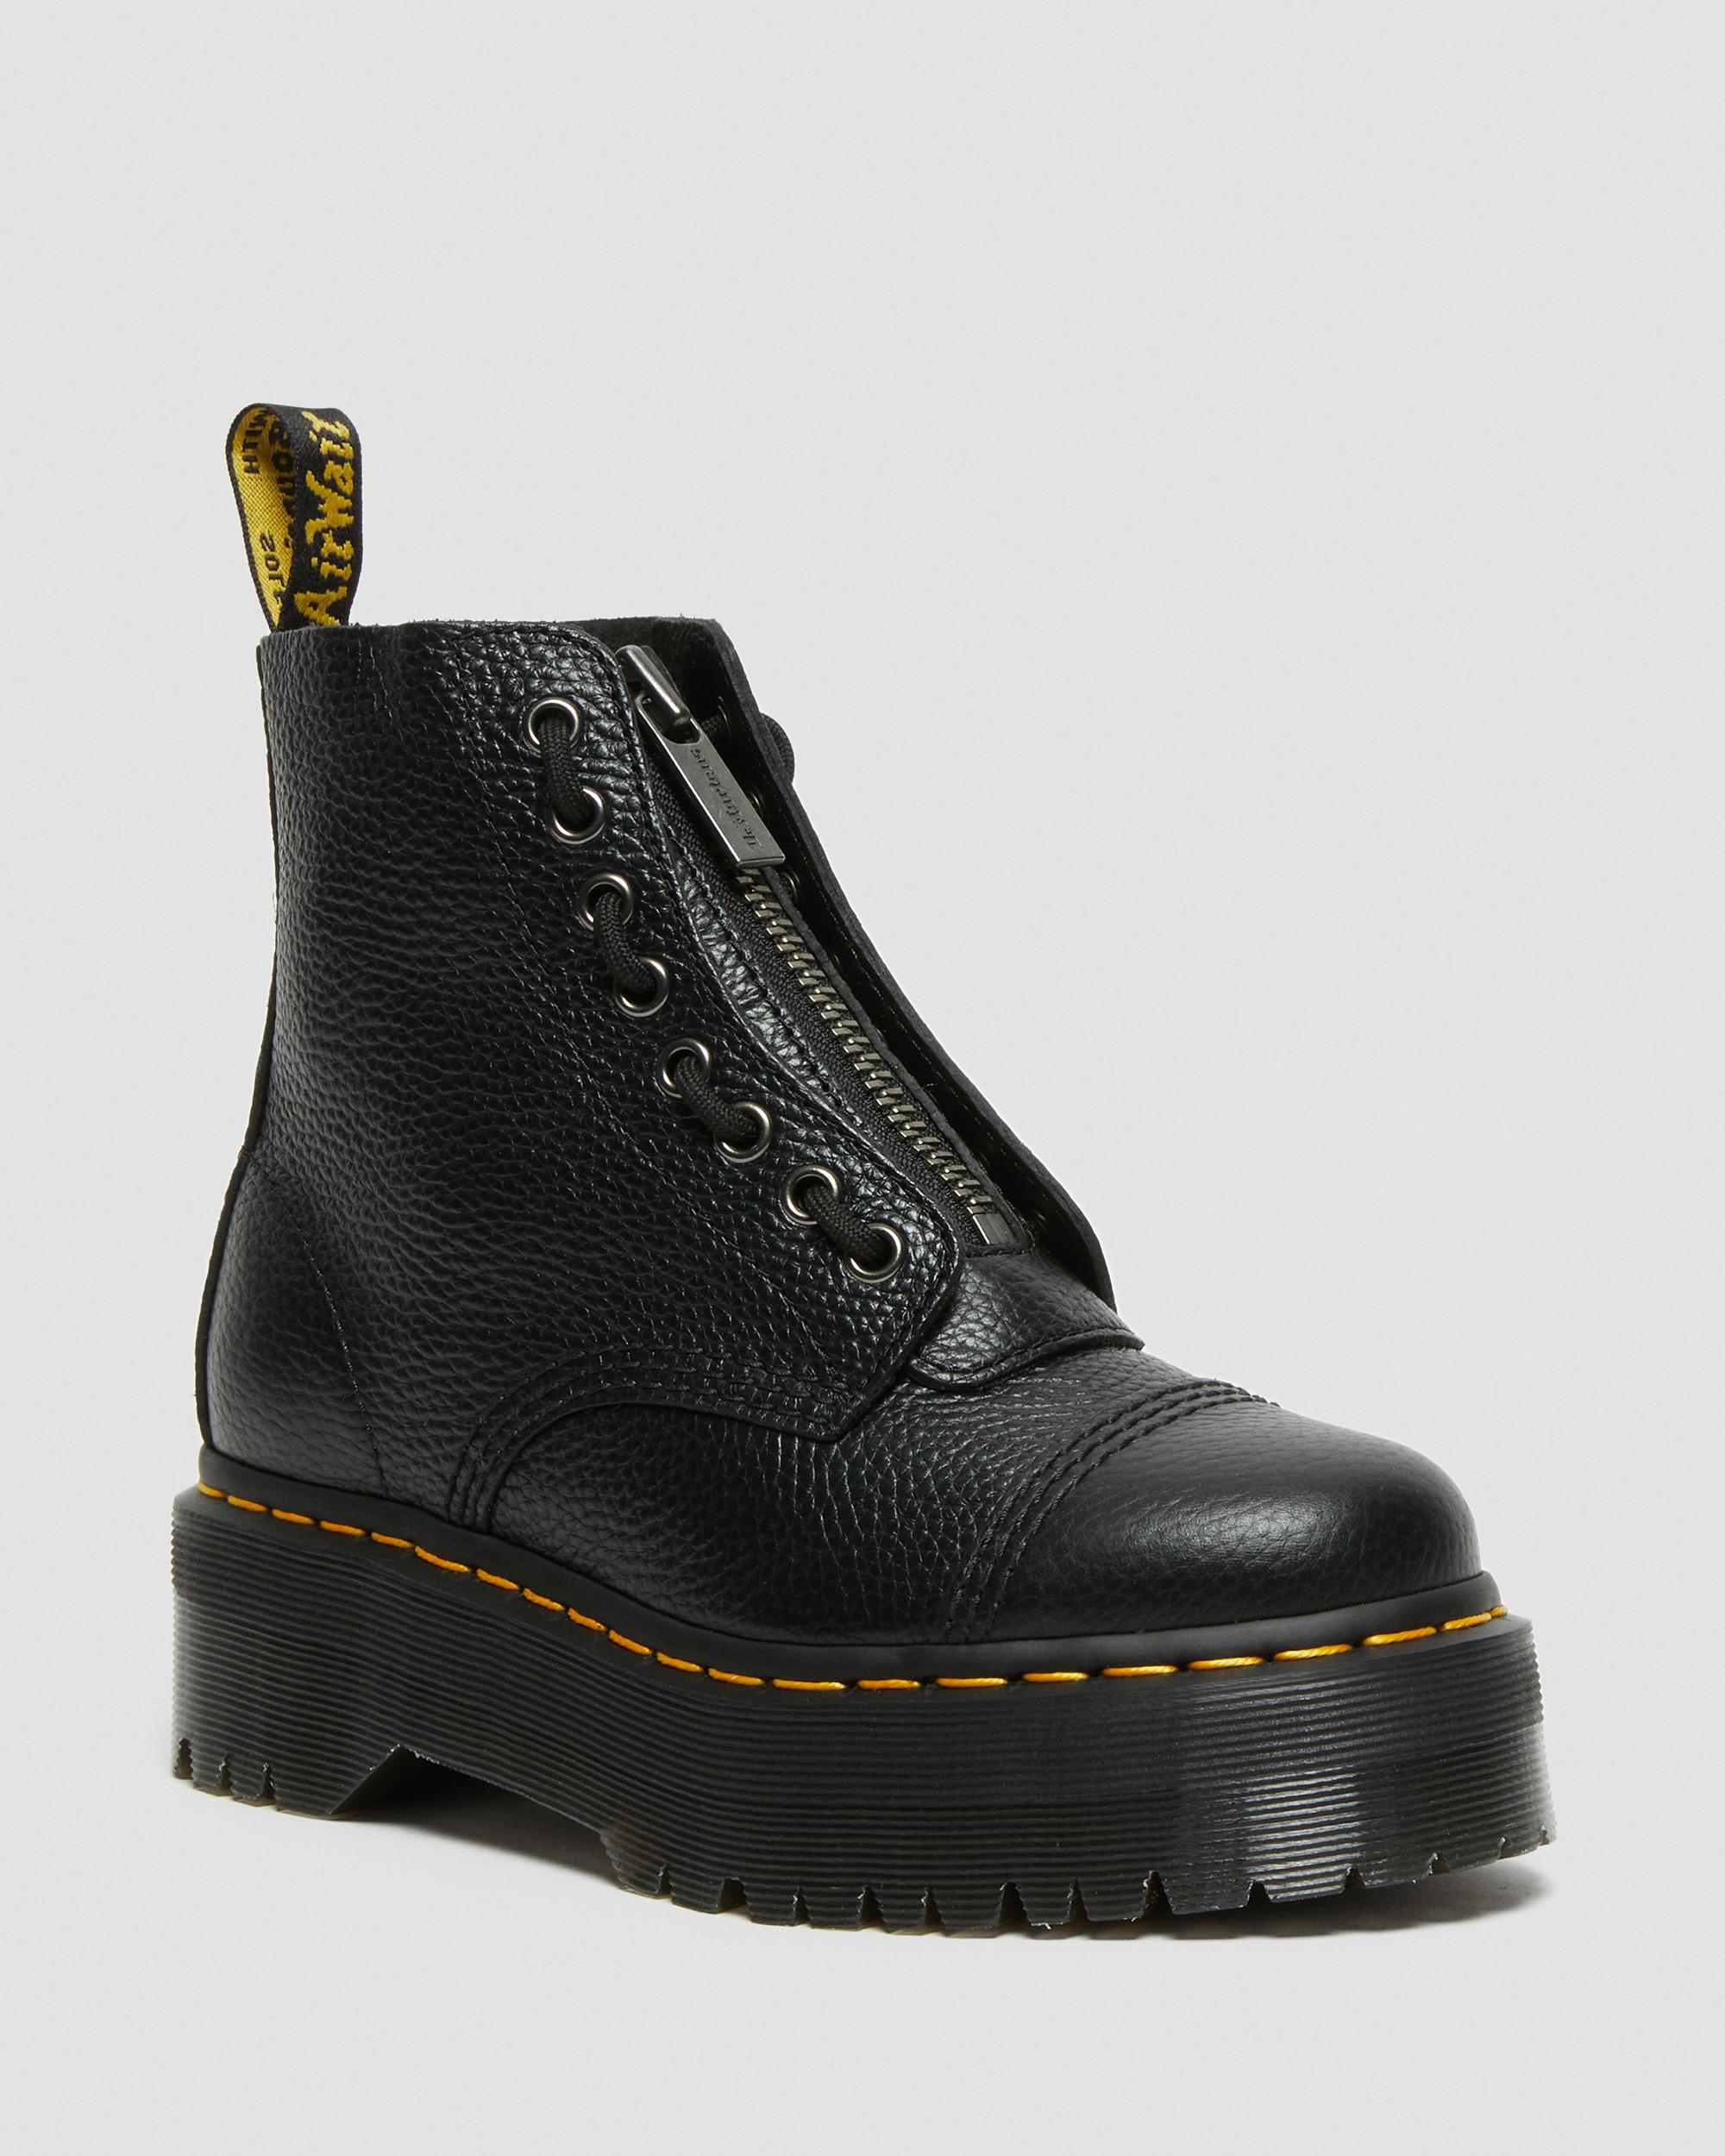 dr martens outlet store near me, Dr Martens Womens Boots Hot